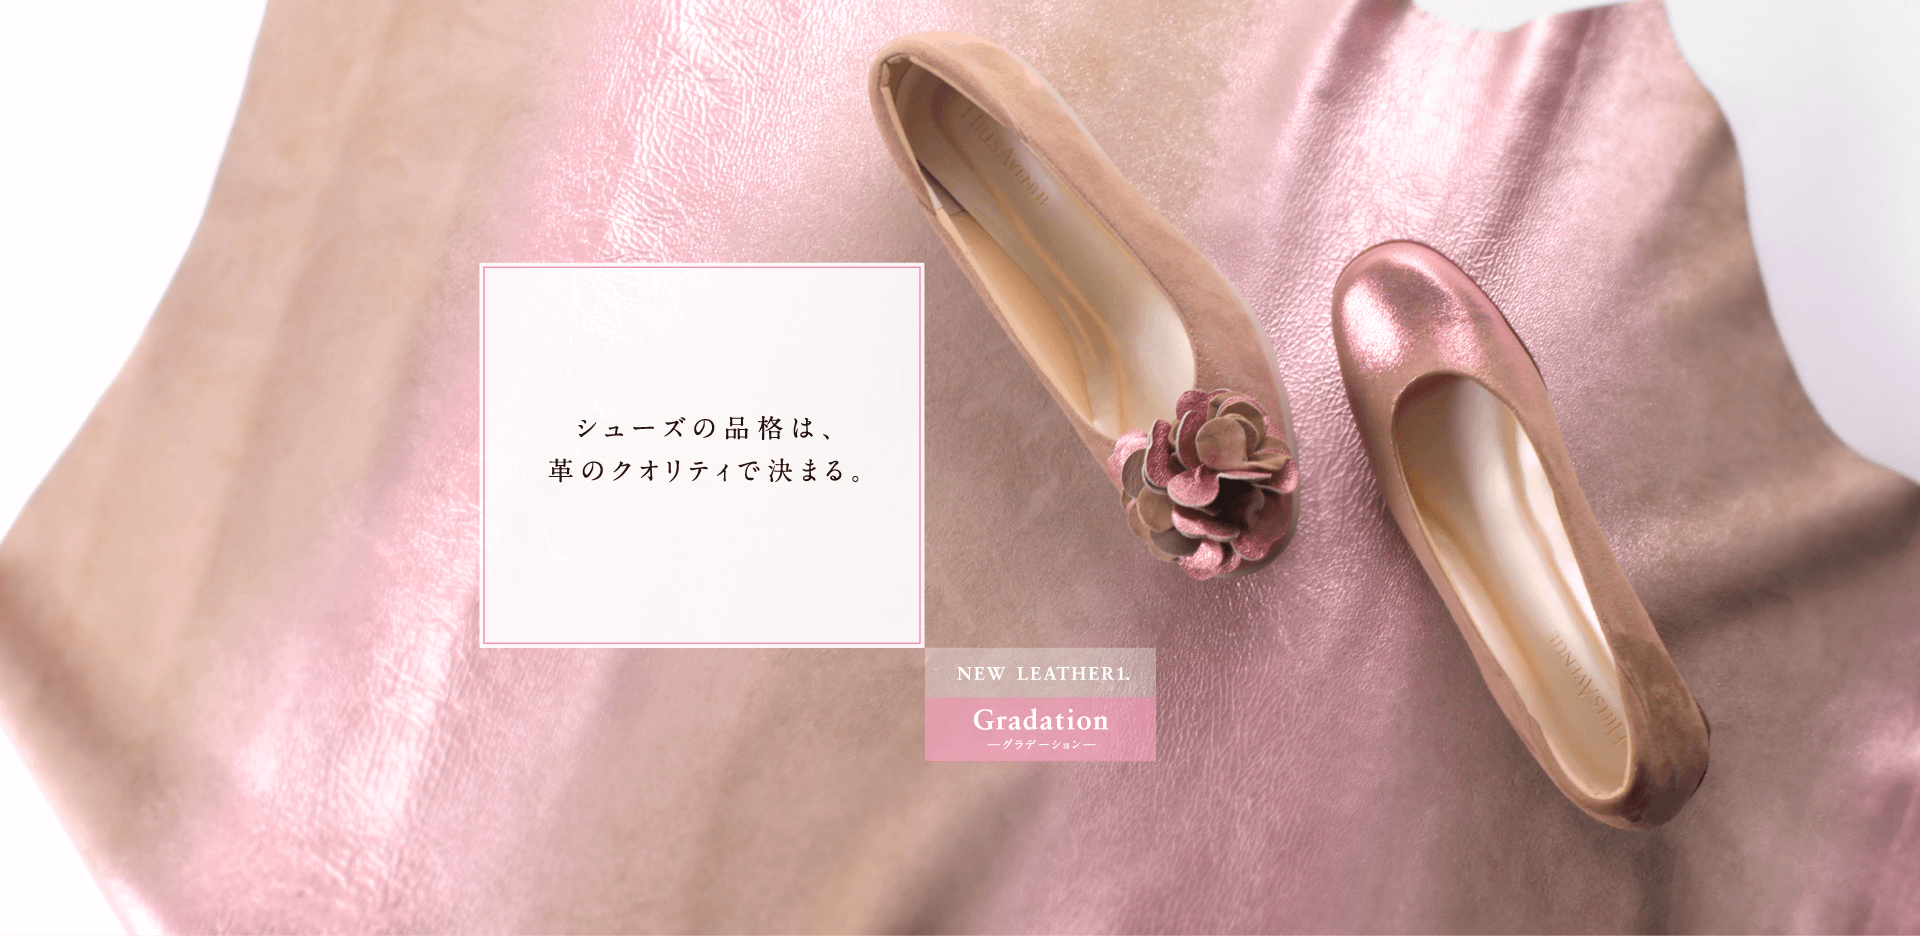 NEW LEATHER1. Gradation - グラデーション